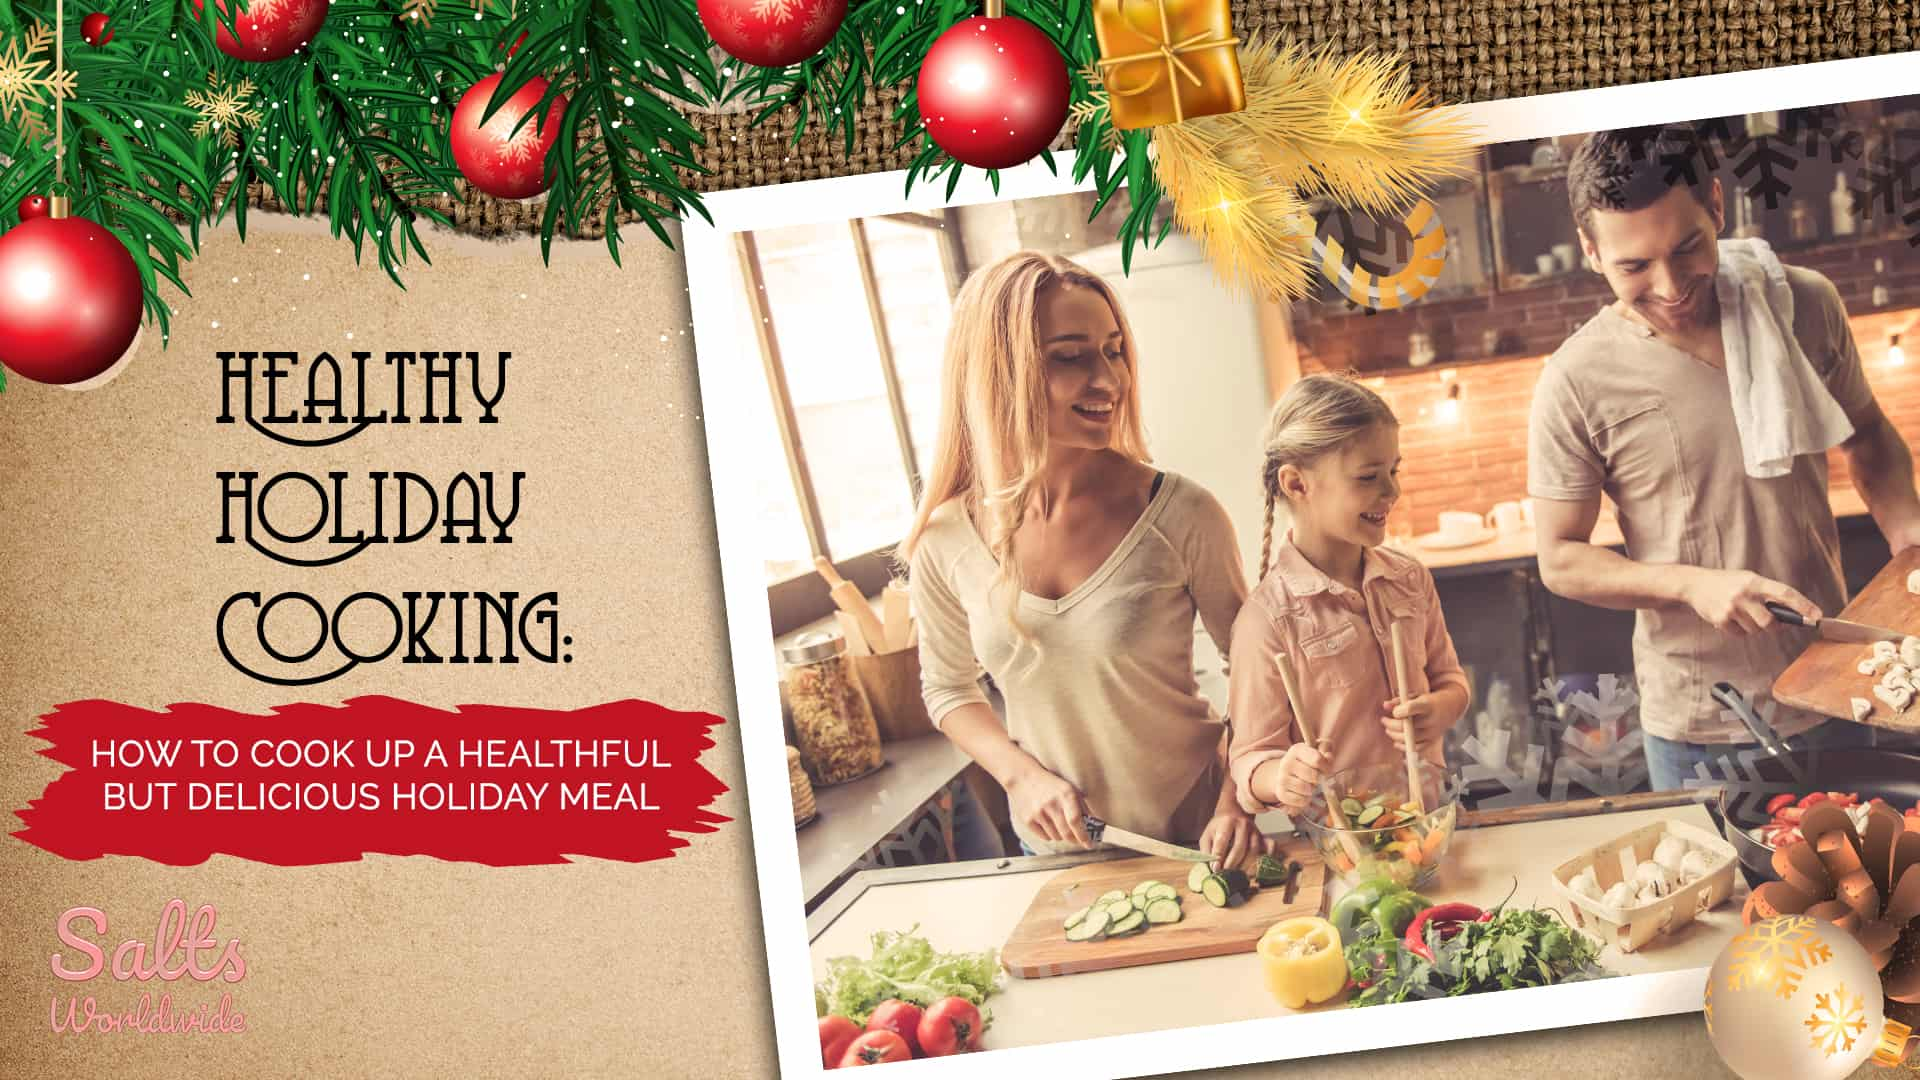 Healthy Holiday Cooking - How to Cook Up a Healthful But Delicious Holiday Meal